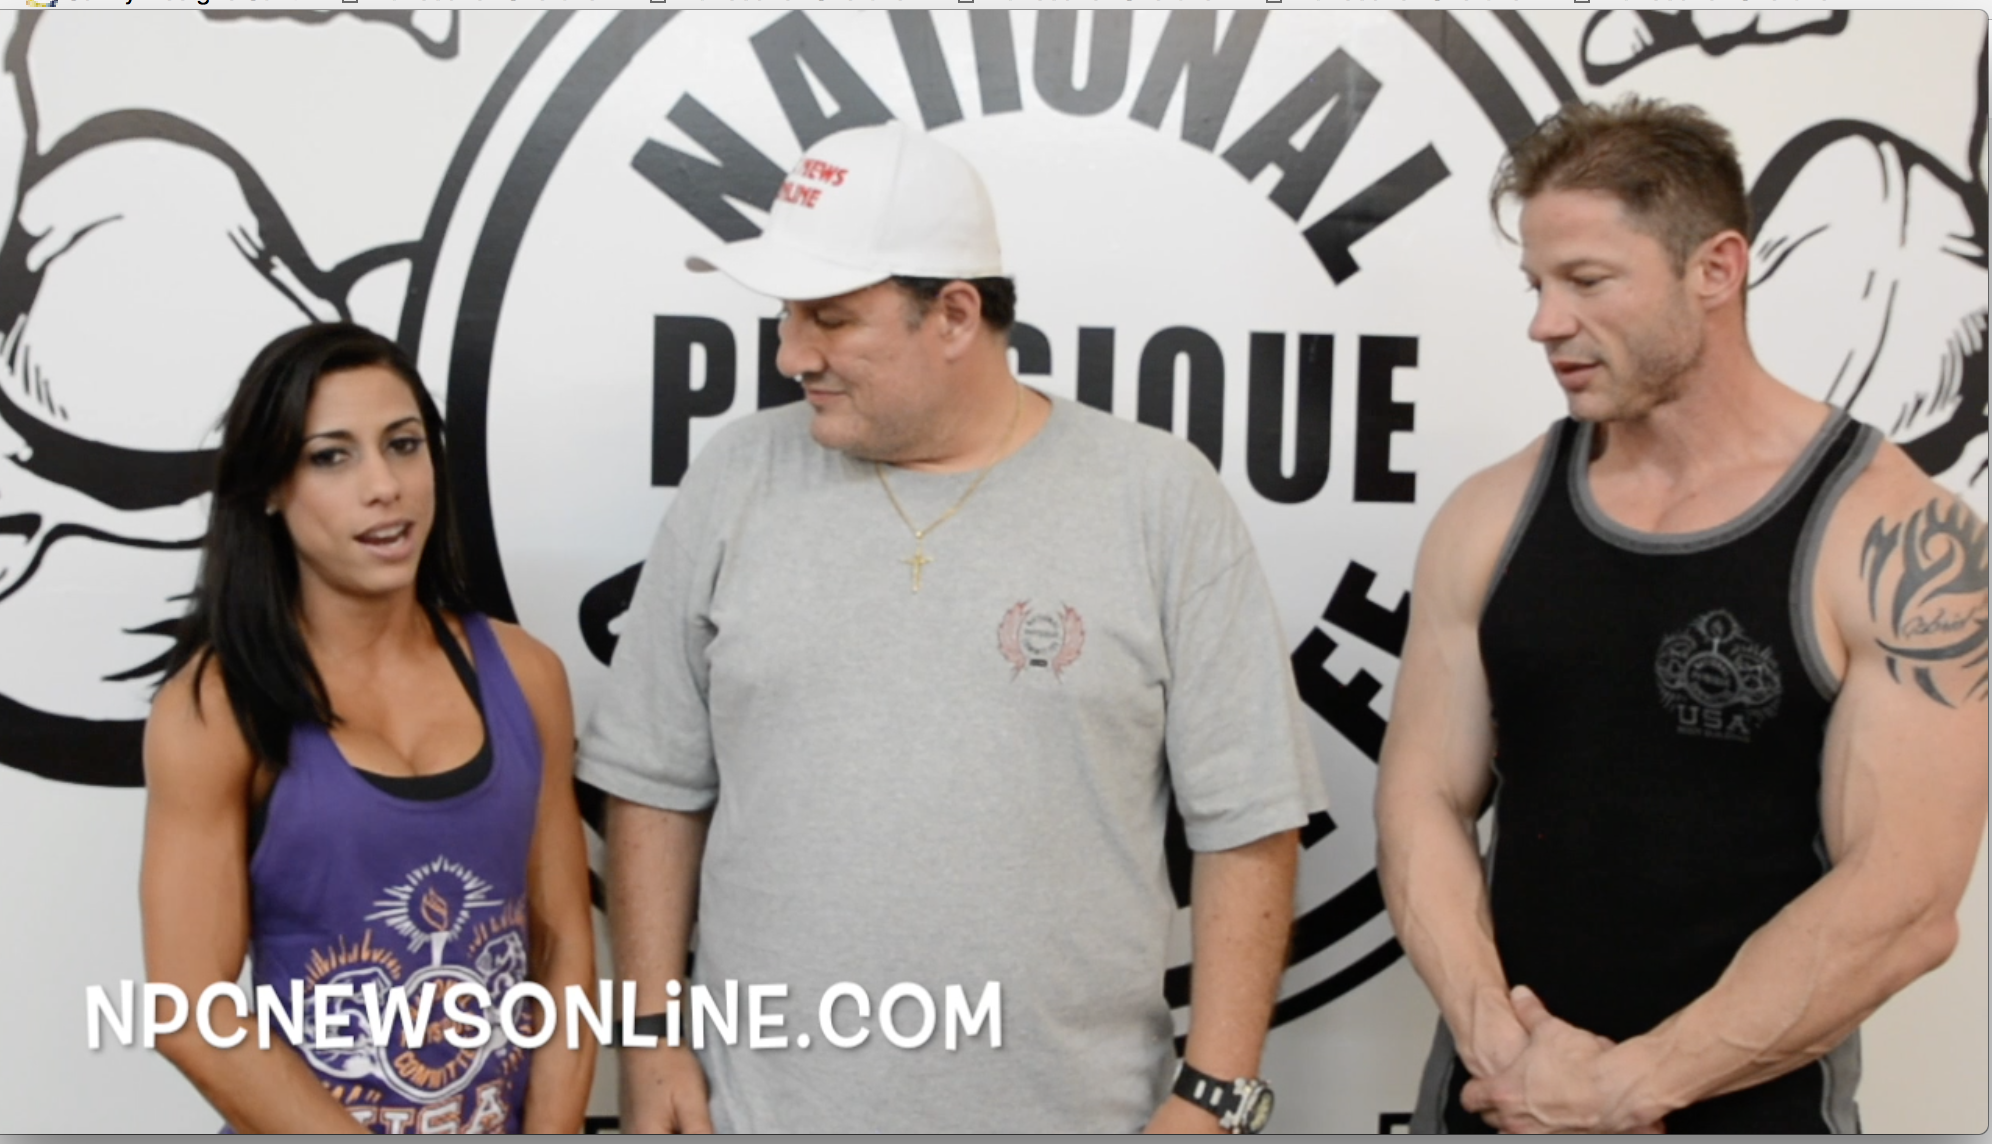 J.M. Manion Interviews Married Fit Couple: IFBB Bikini Pro Oemil Rodriguez & NPC Competitor Francisco Cardona